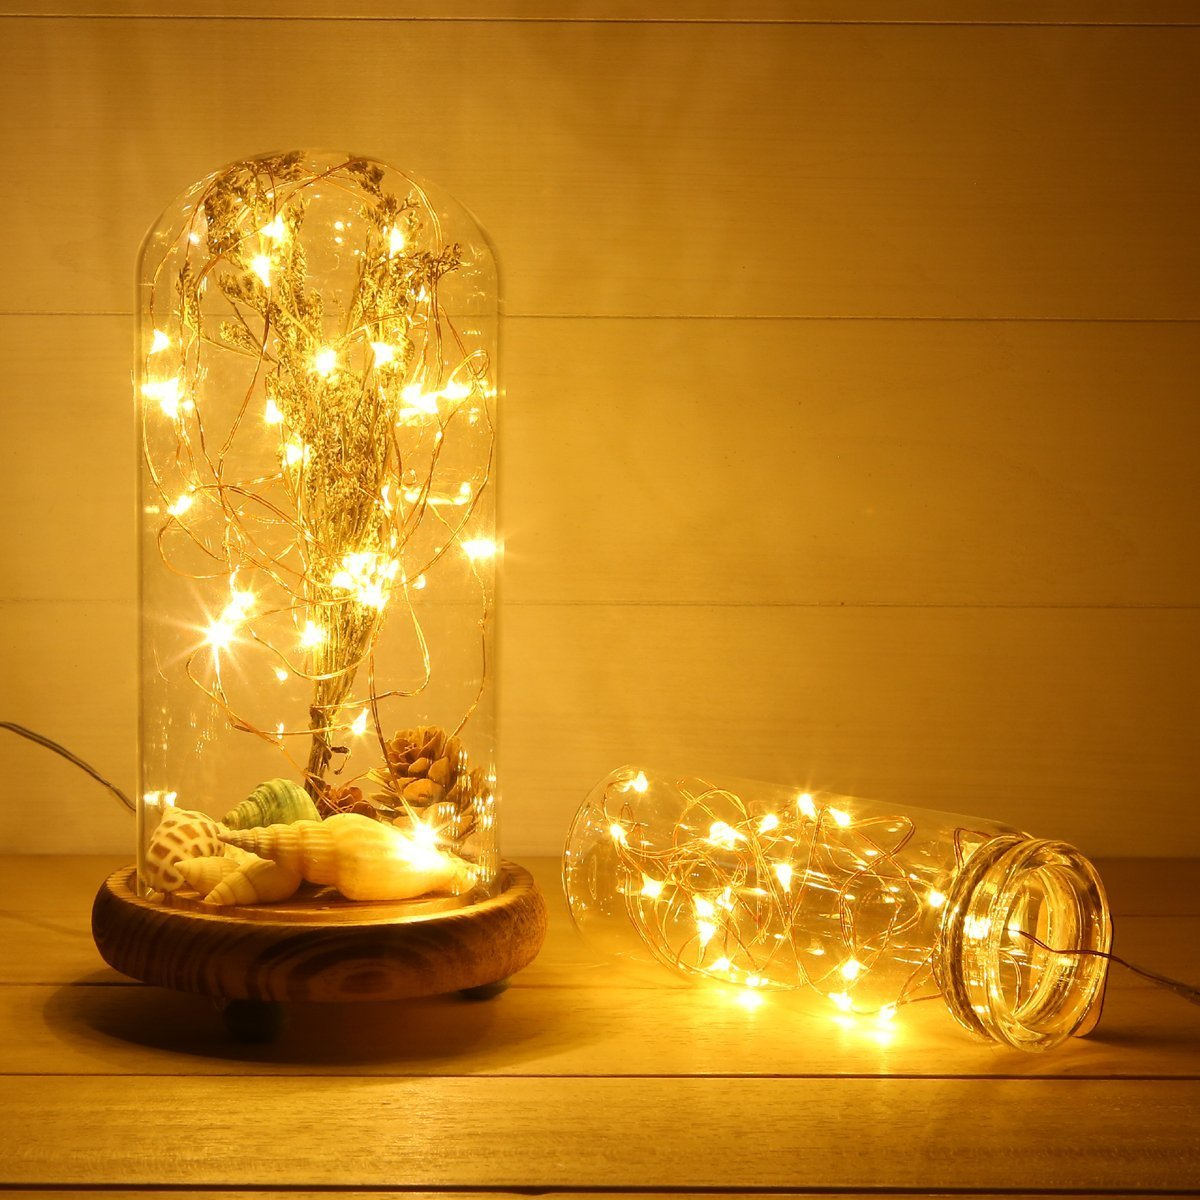 Amazon.com : ANJAYLIA LED Fairy String Lights, 10Ft/3M 30leds ...